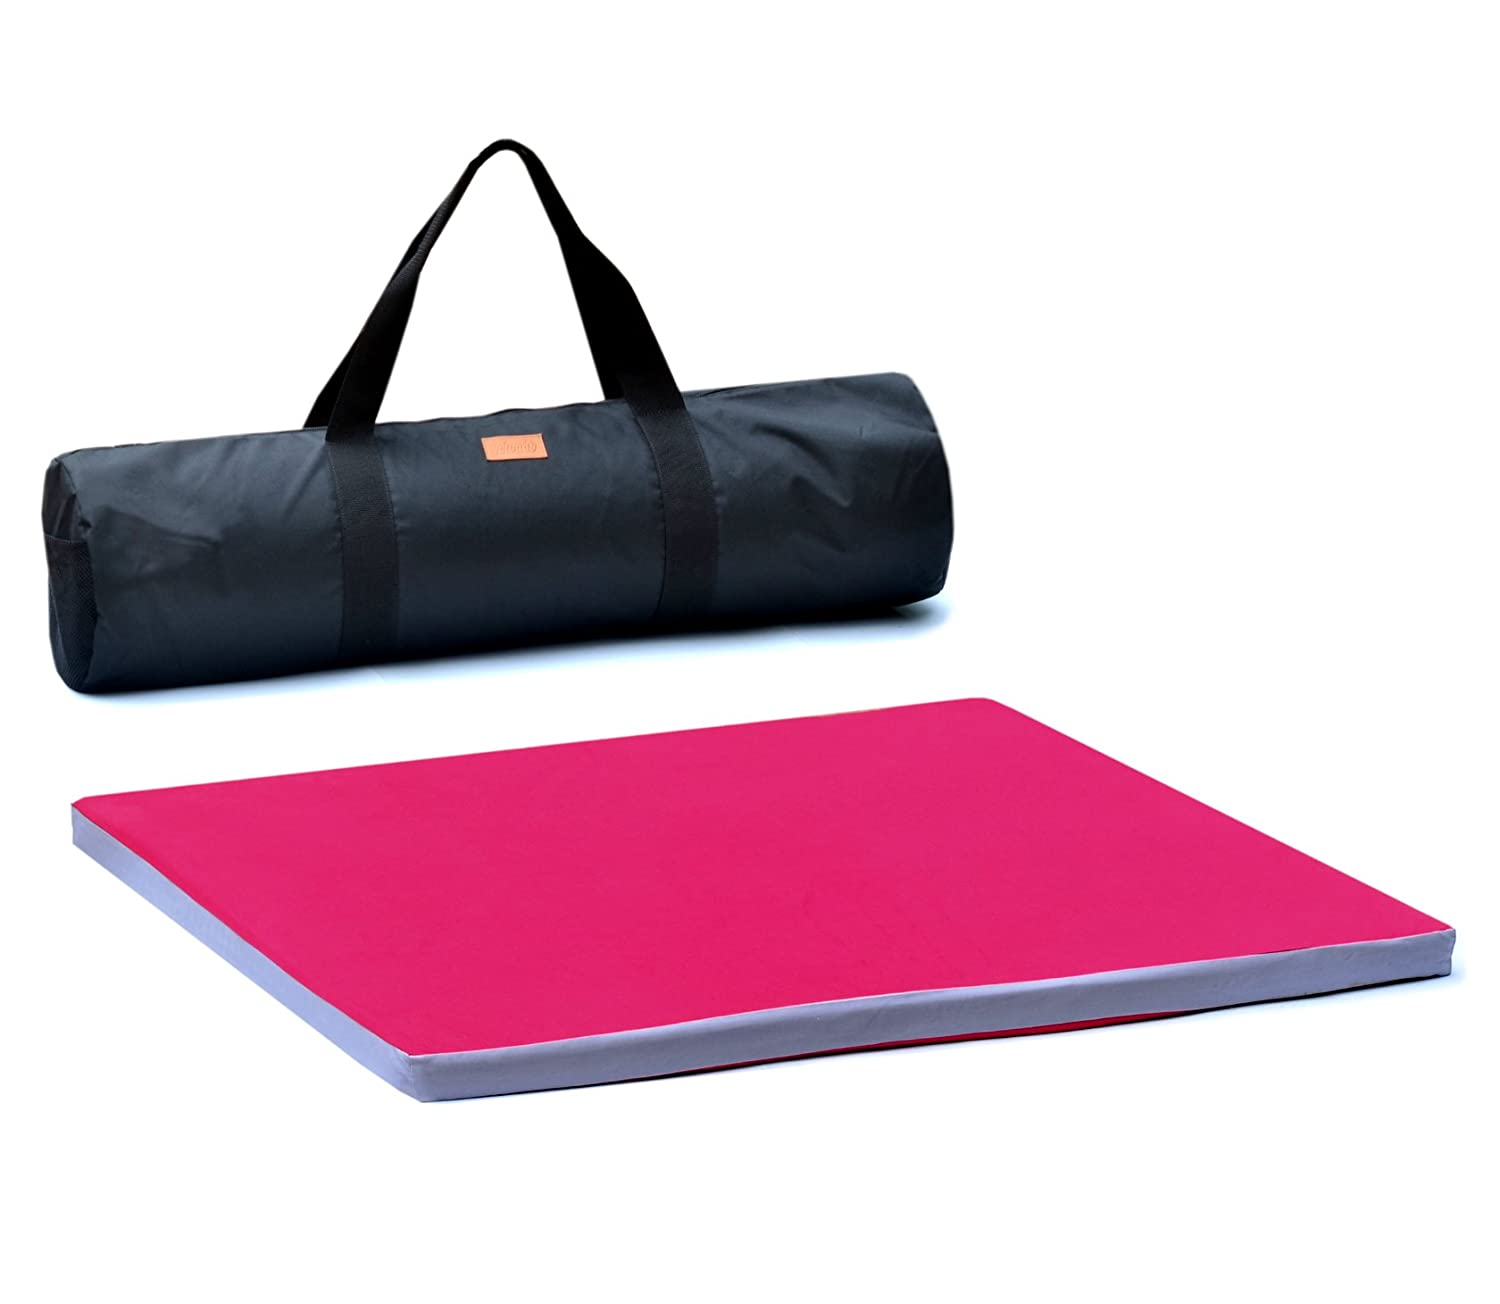 img meditation yoga accessories divine products shop zafu with mats and bolster filling collections cushion buckwheat